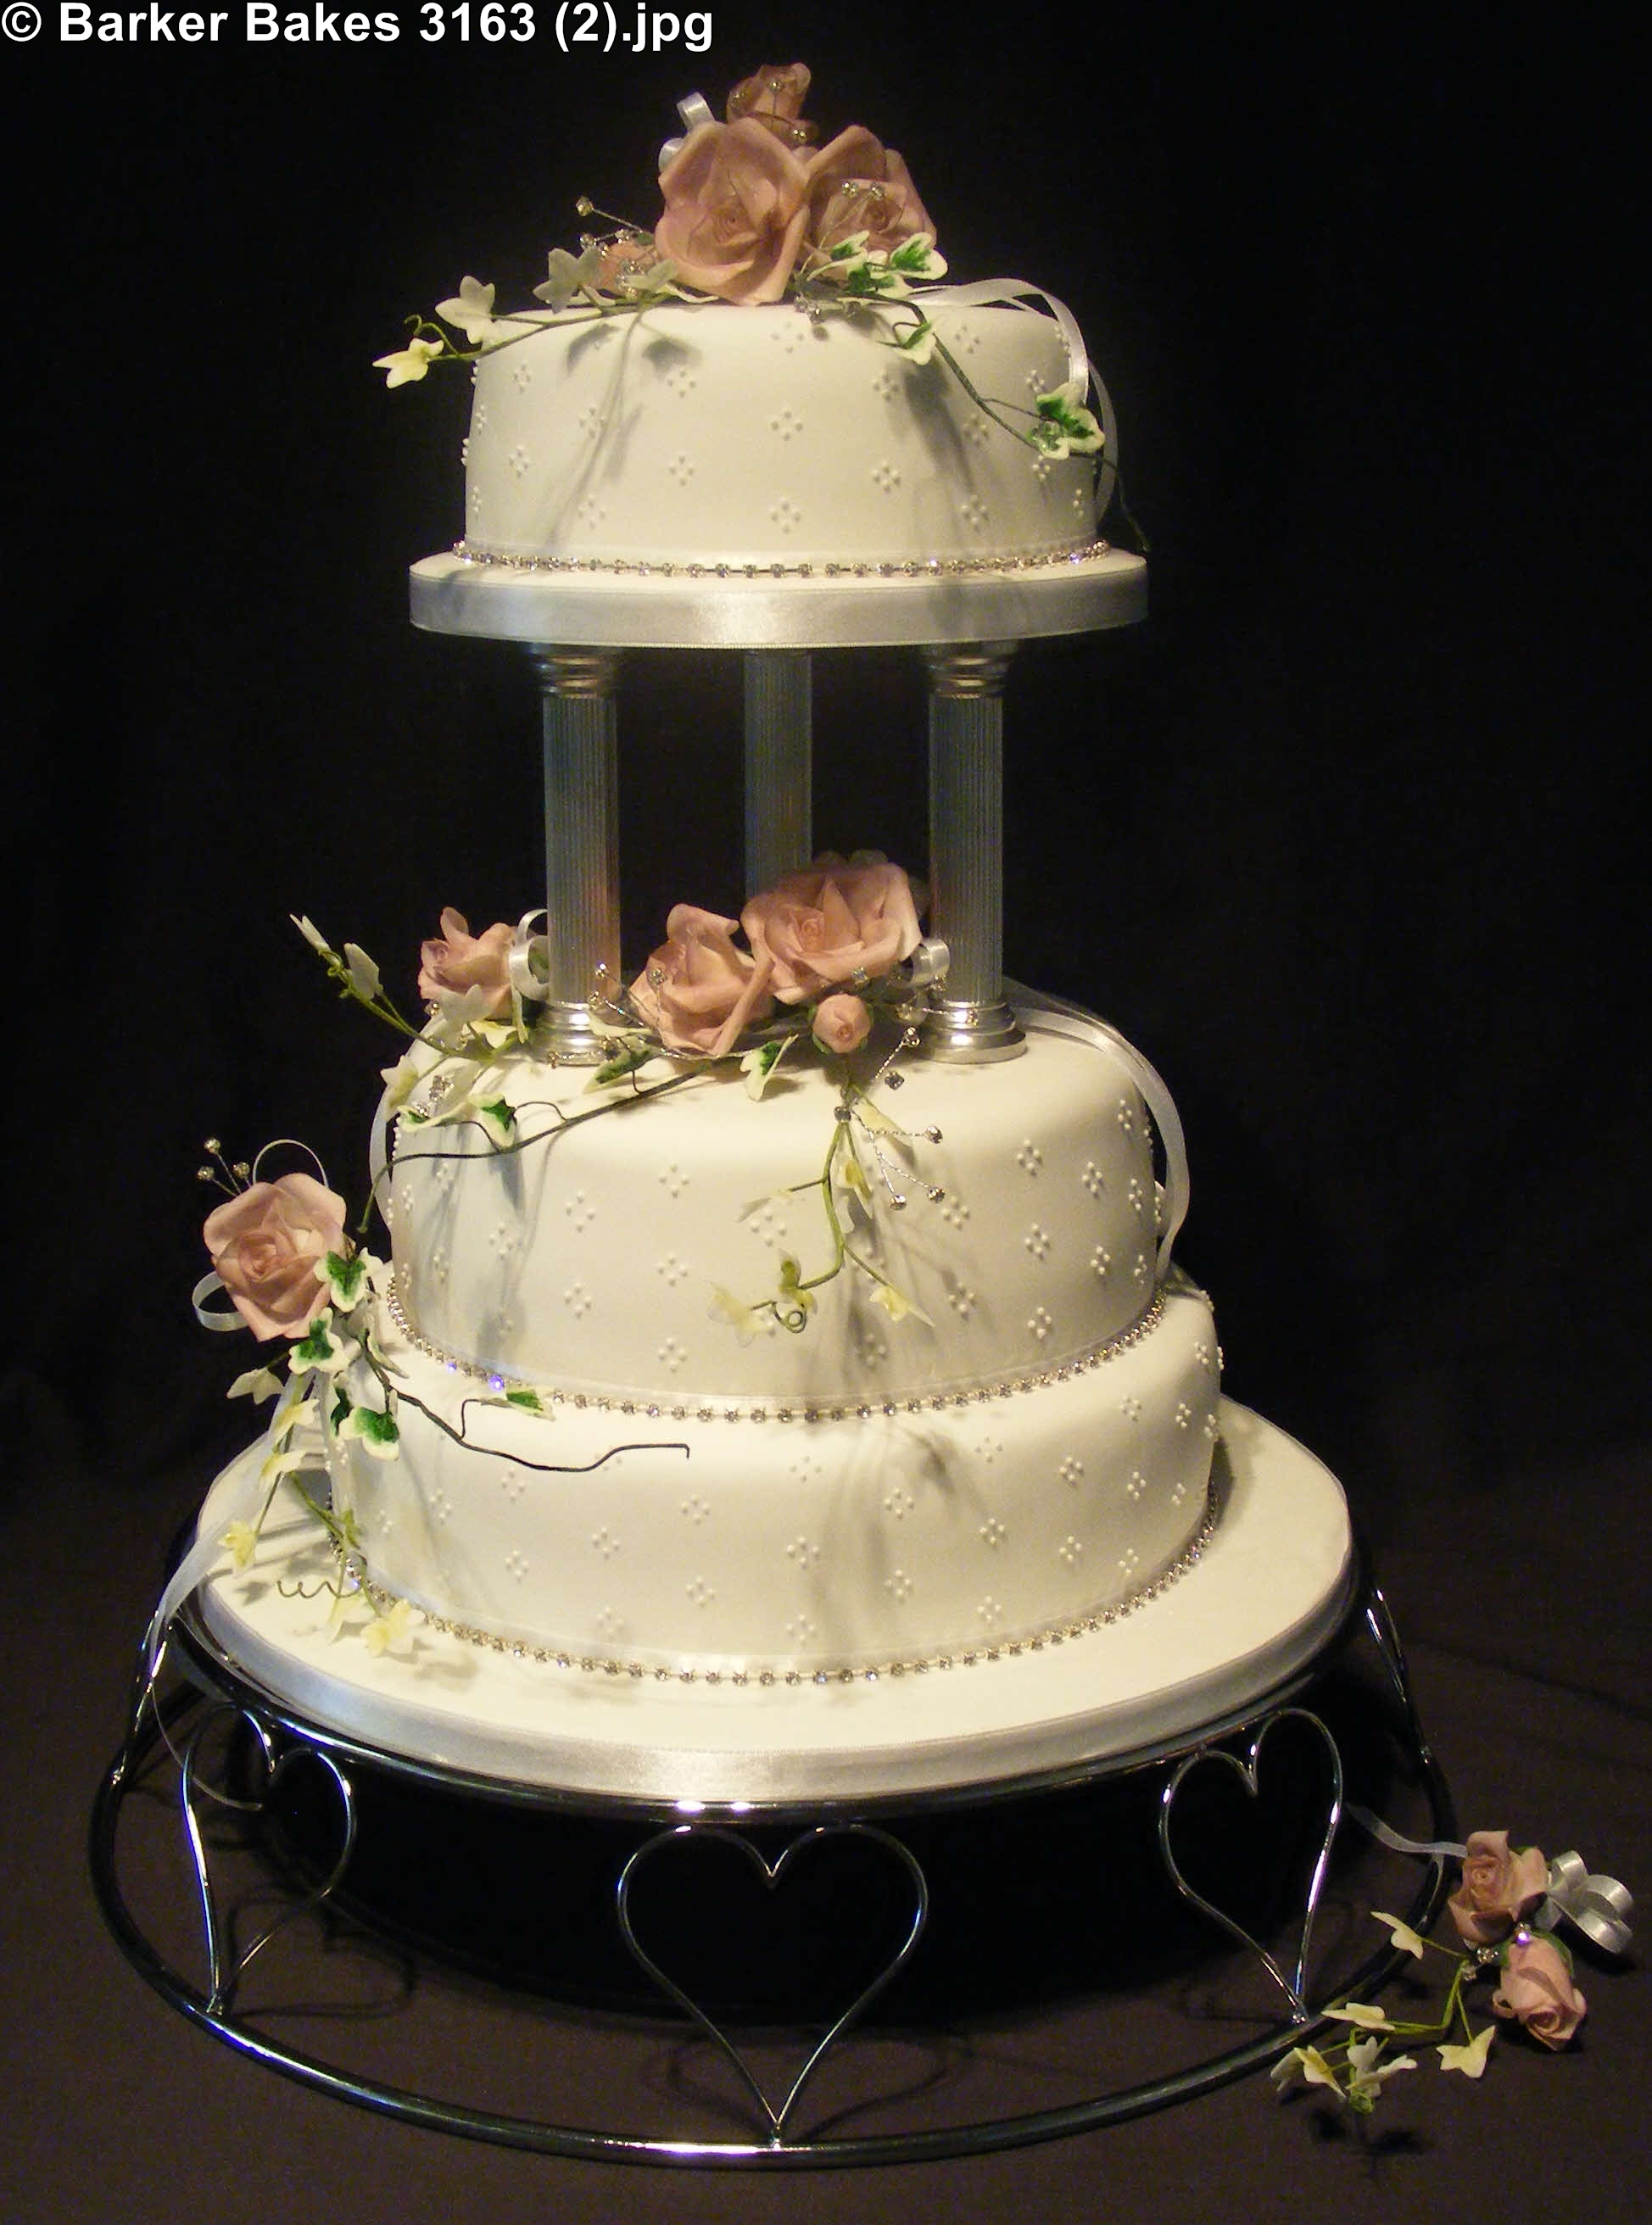 Elegant Wedding Cakes – Barker Bakes Ltd